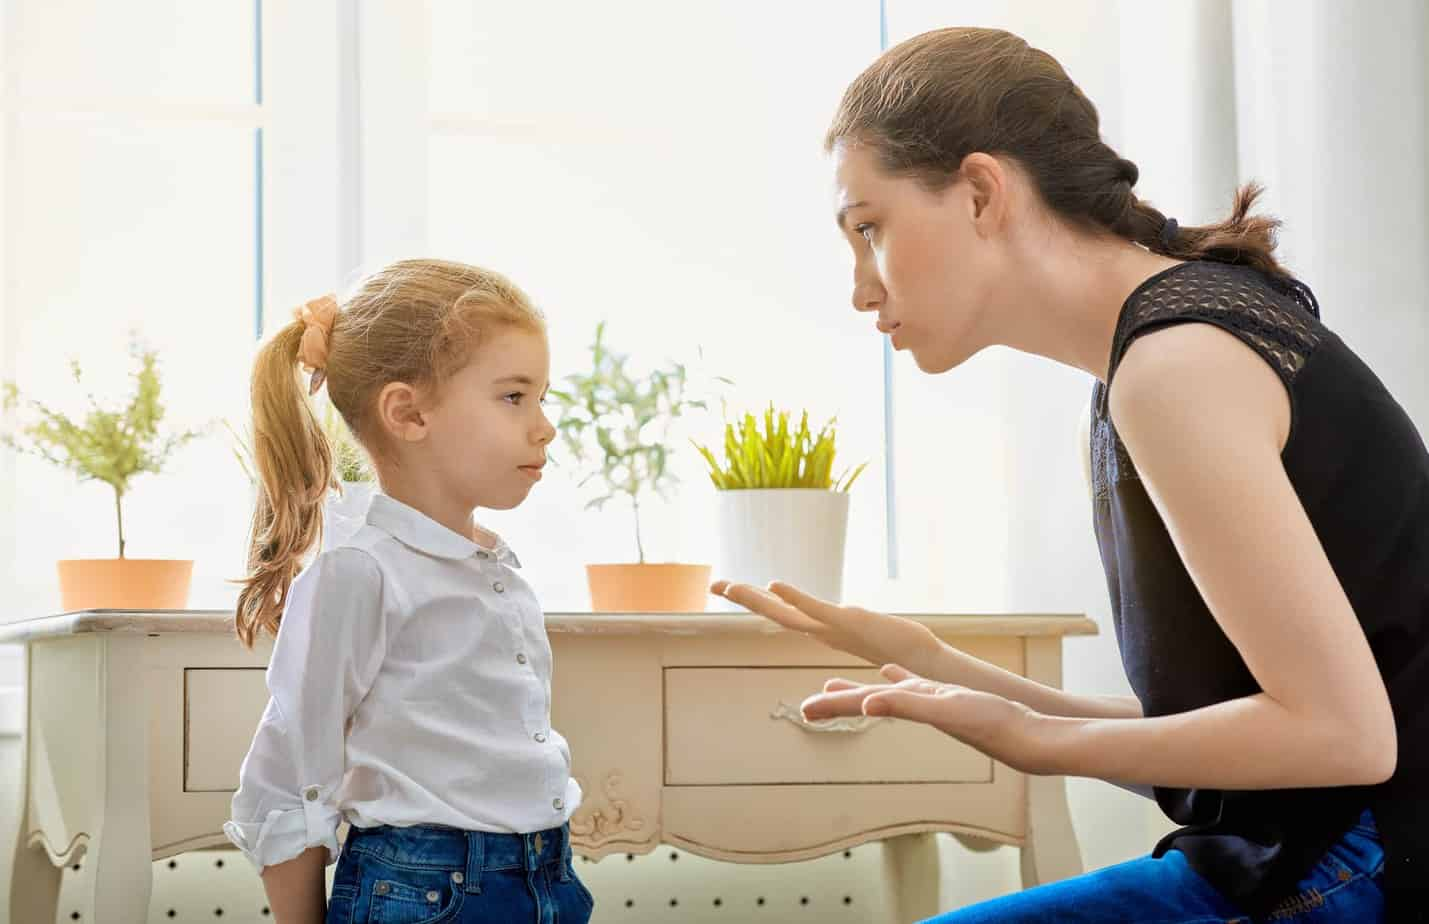 6 positive parenting strategies to use instead of yelling